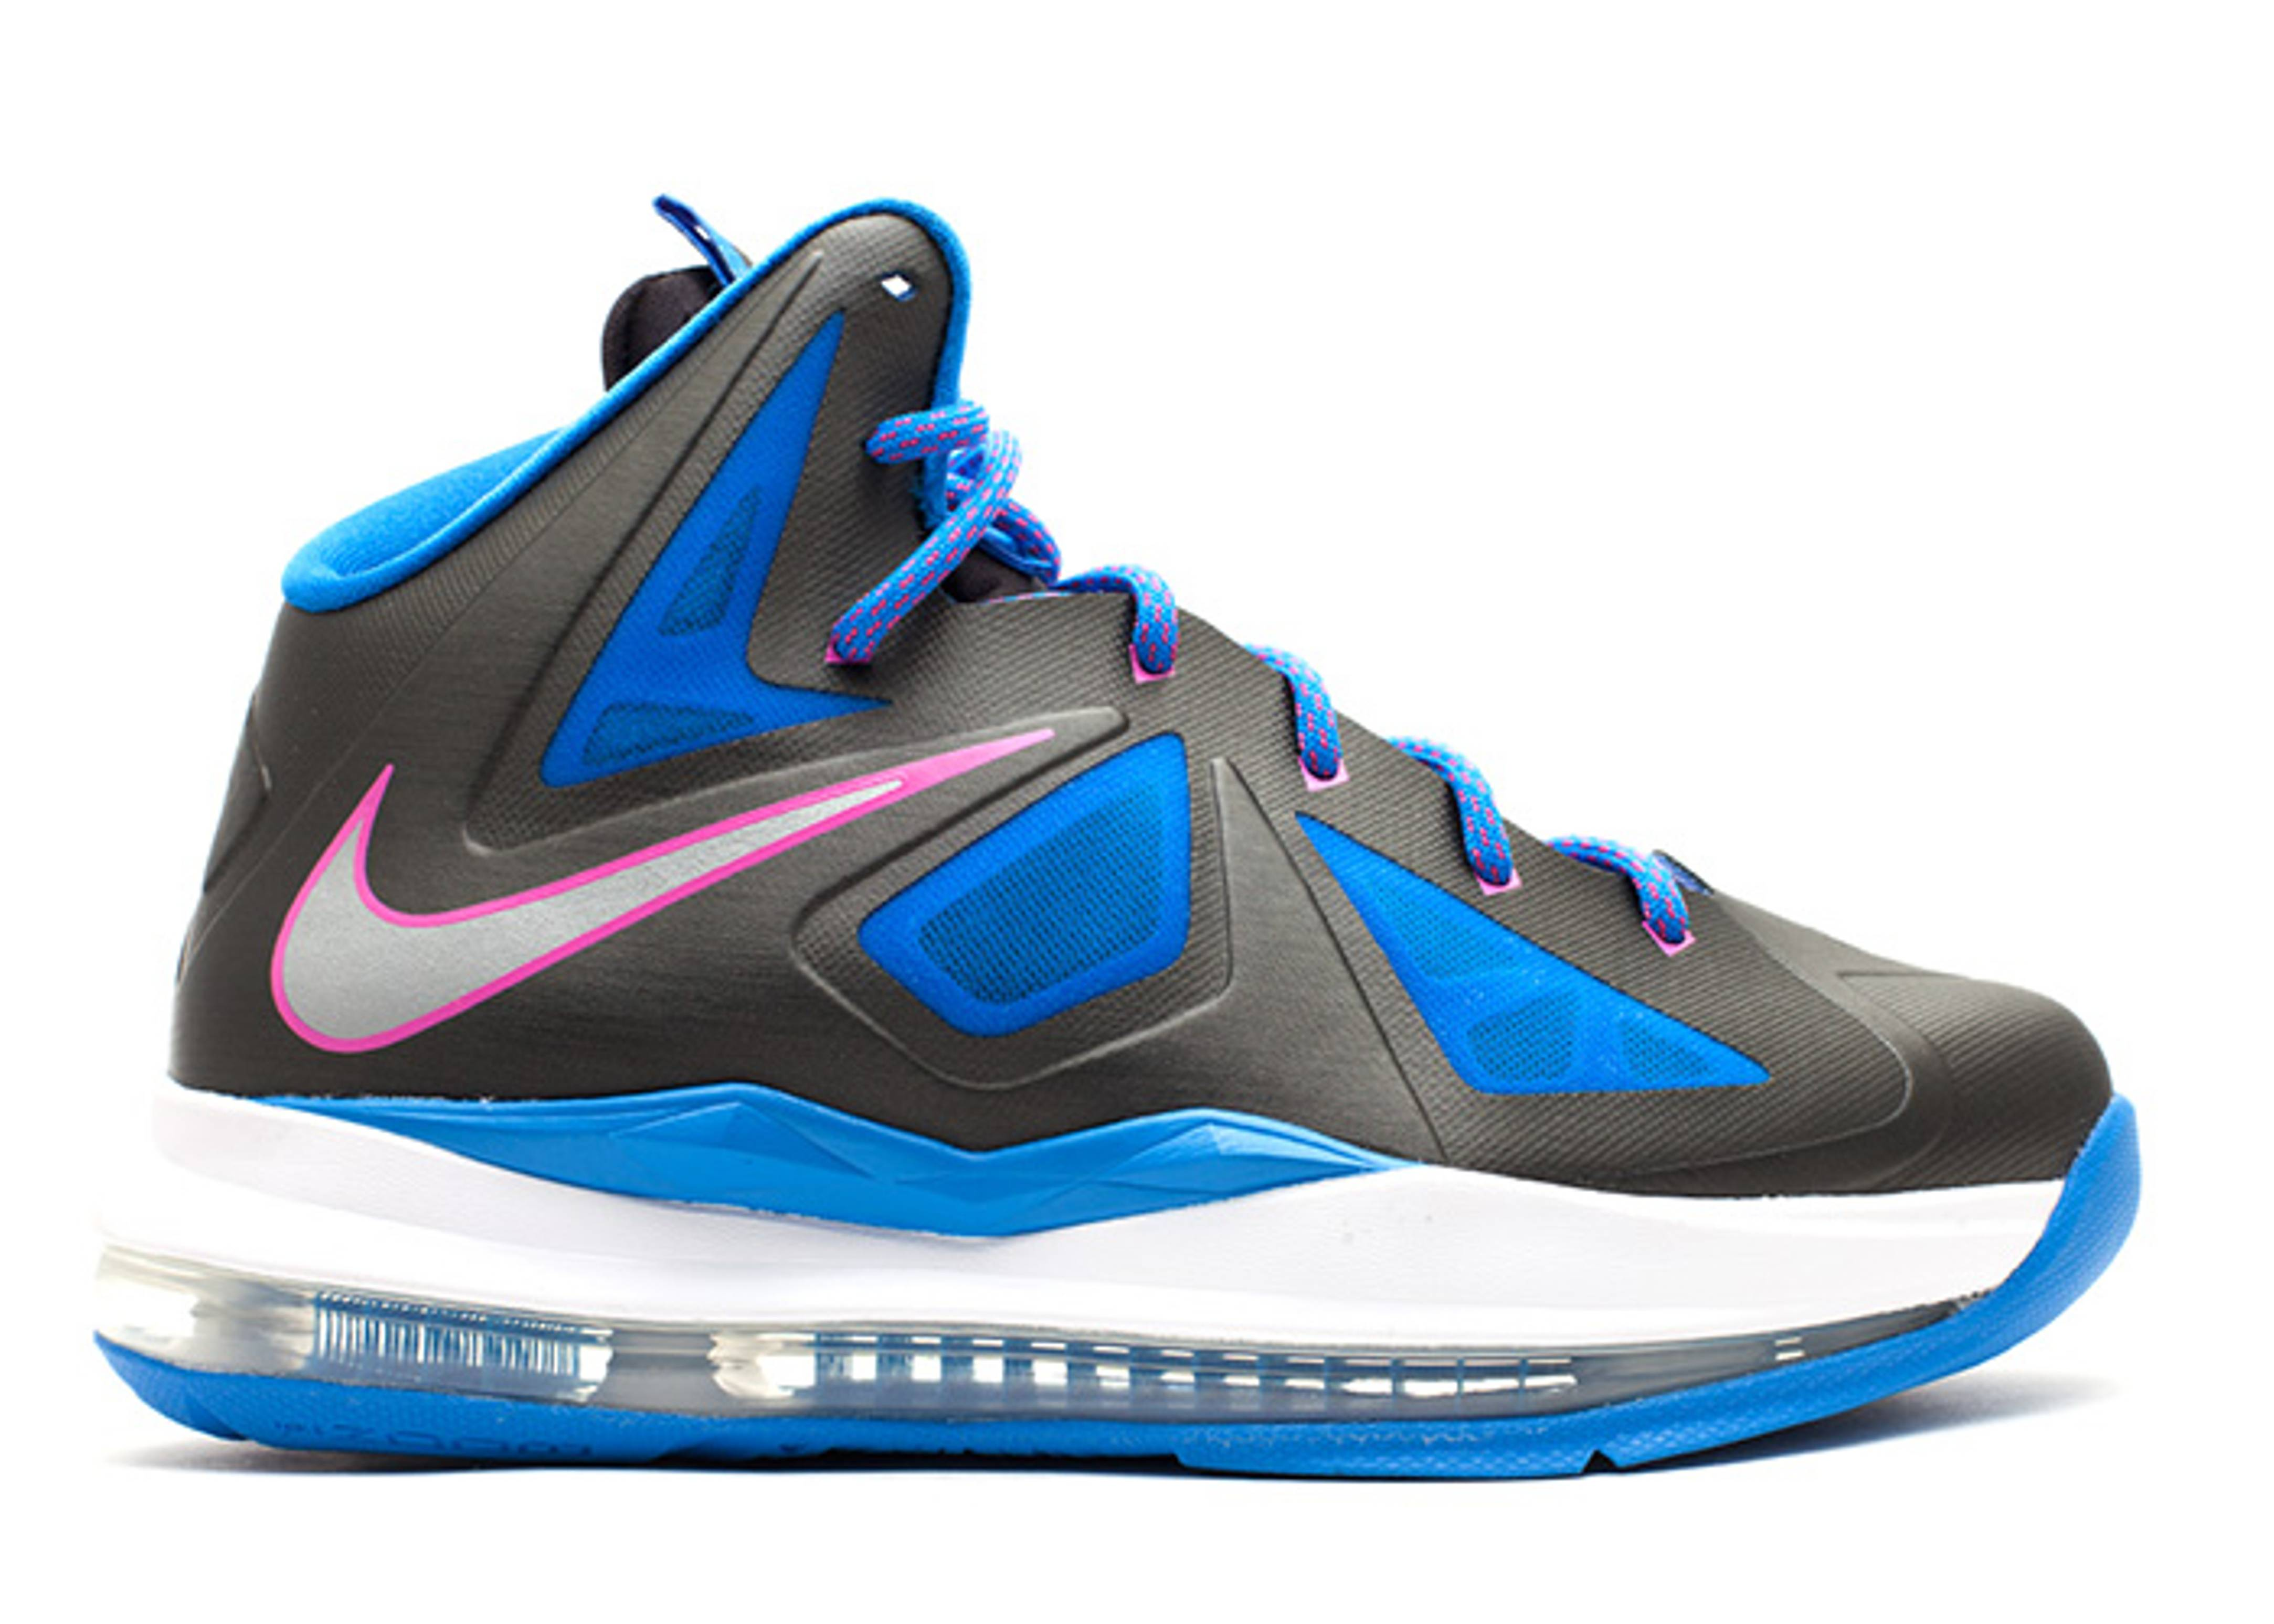 online store 104ef 08653 christmas kd 5 men. black blue and white lebron x